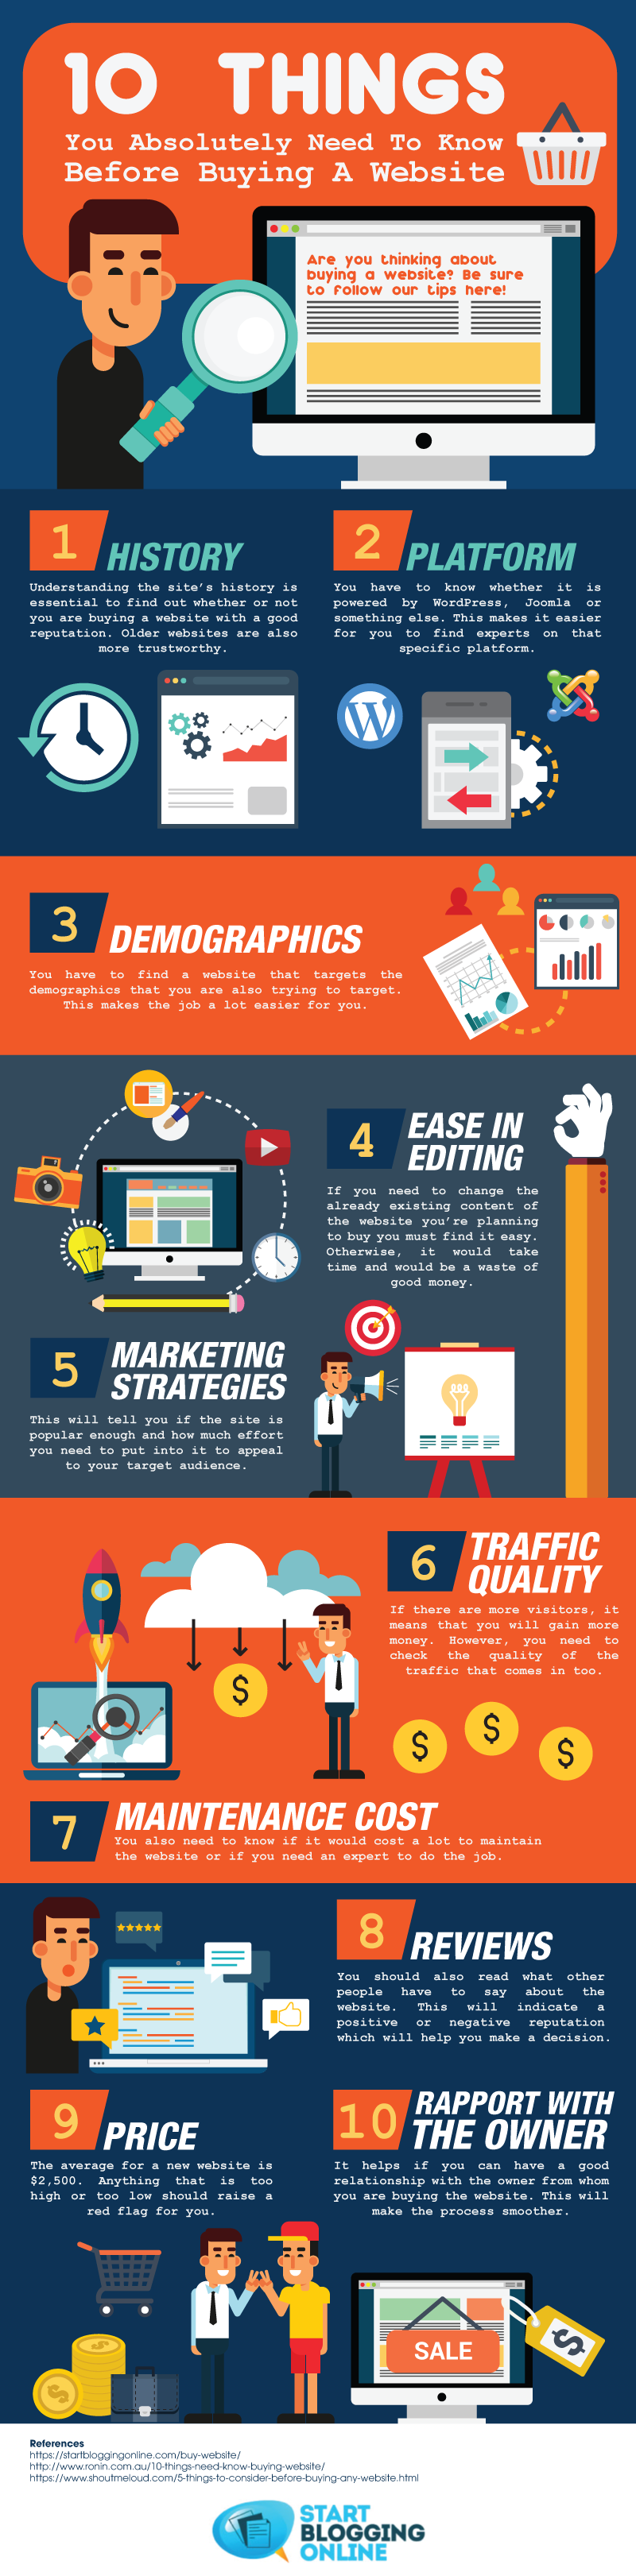 10 Things You Absolutely Need To Know About Buying A Website infographic